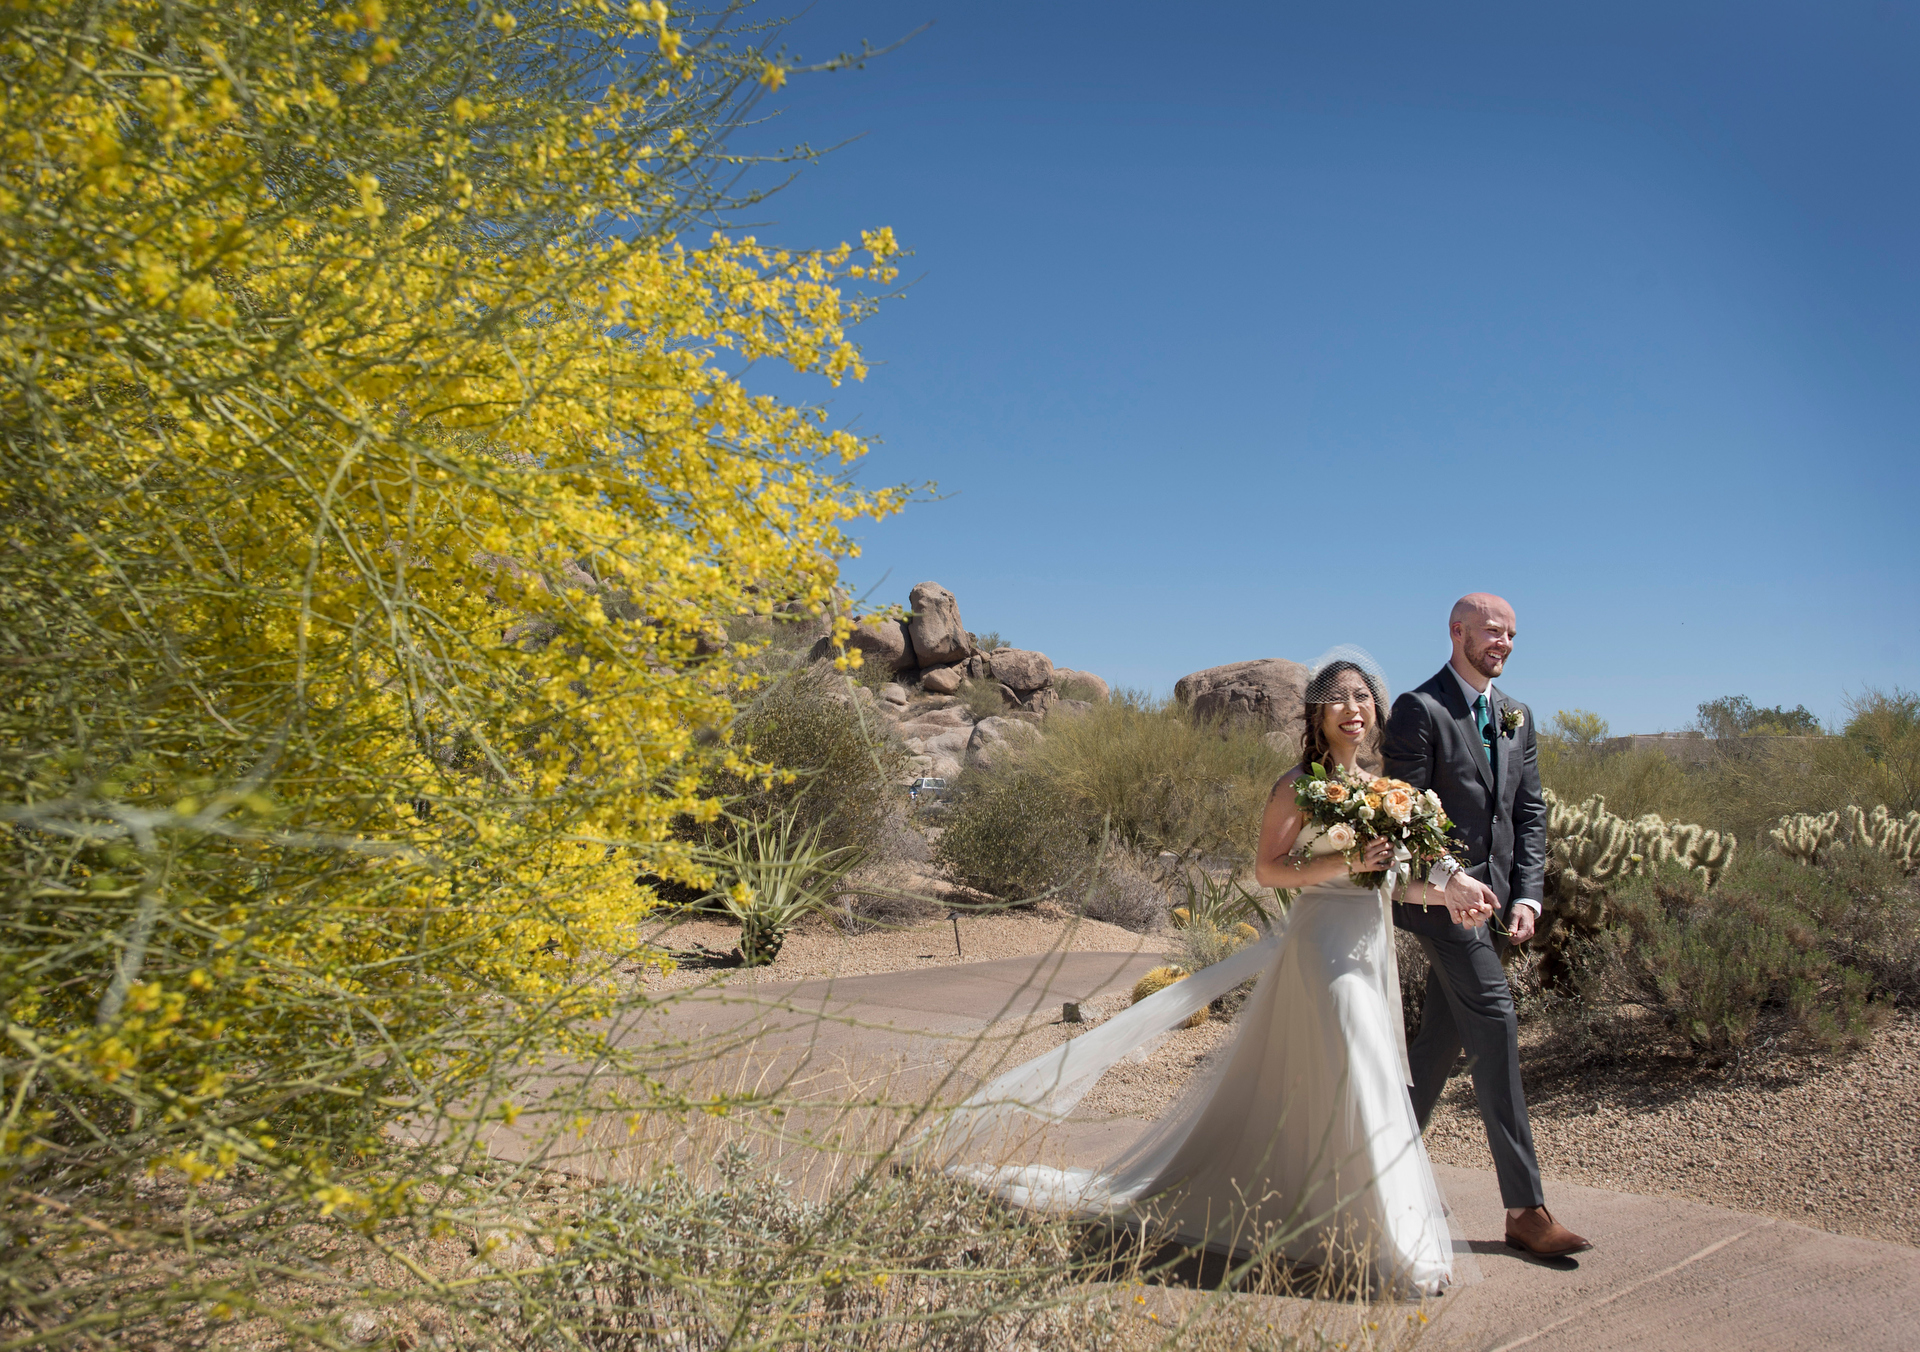 Arizona Outdoor Elopement Ceremony Picture | After the ceremony, the couple goes for a walk through the natural desert landscape